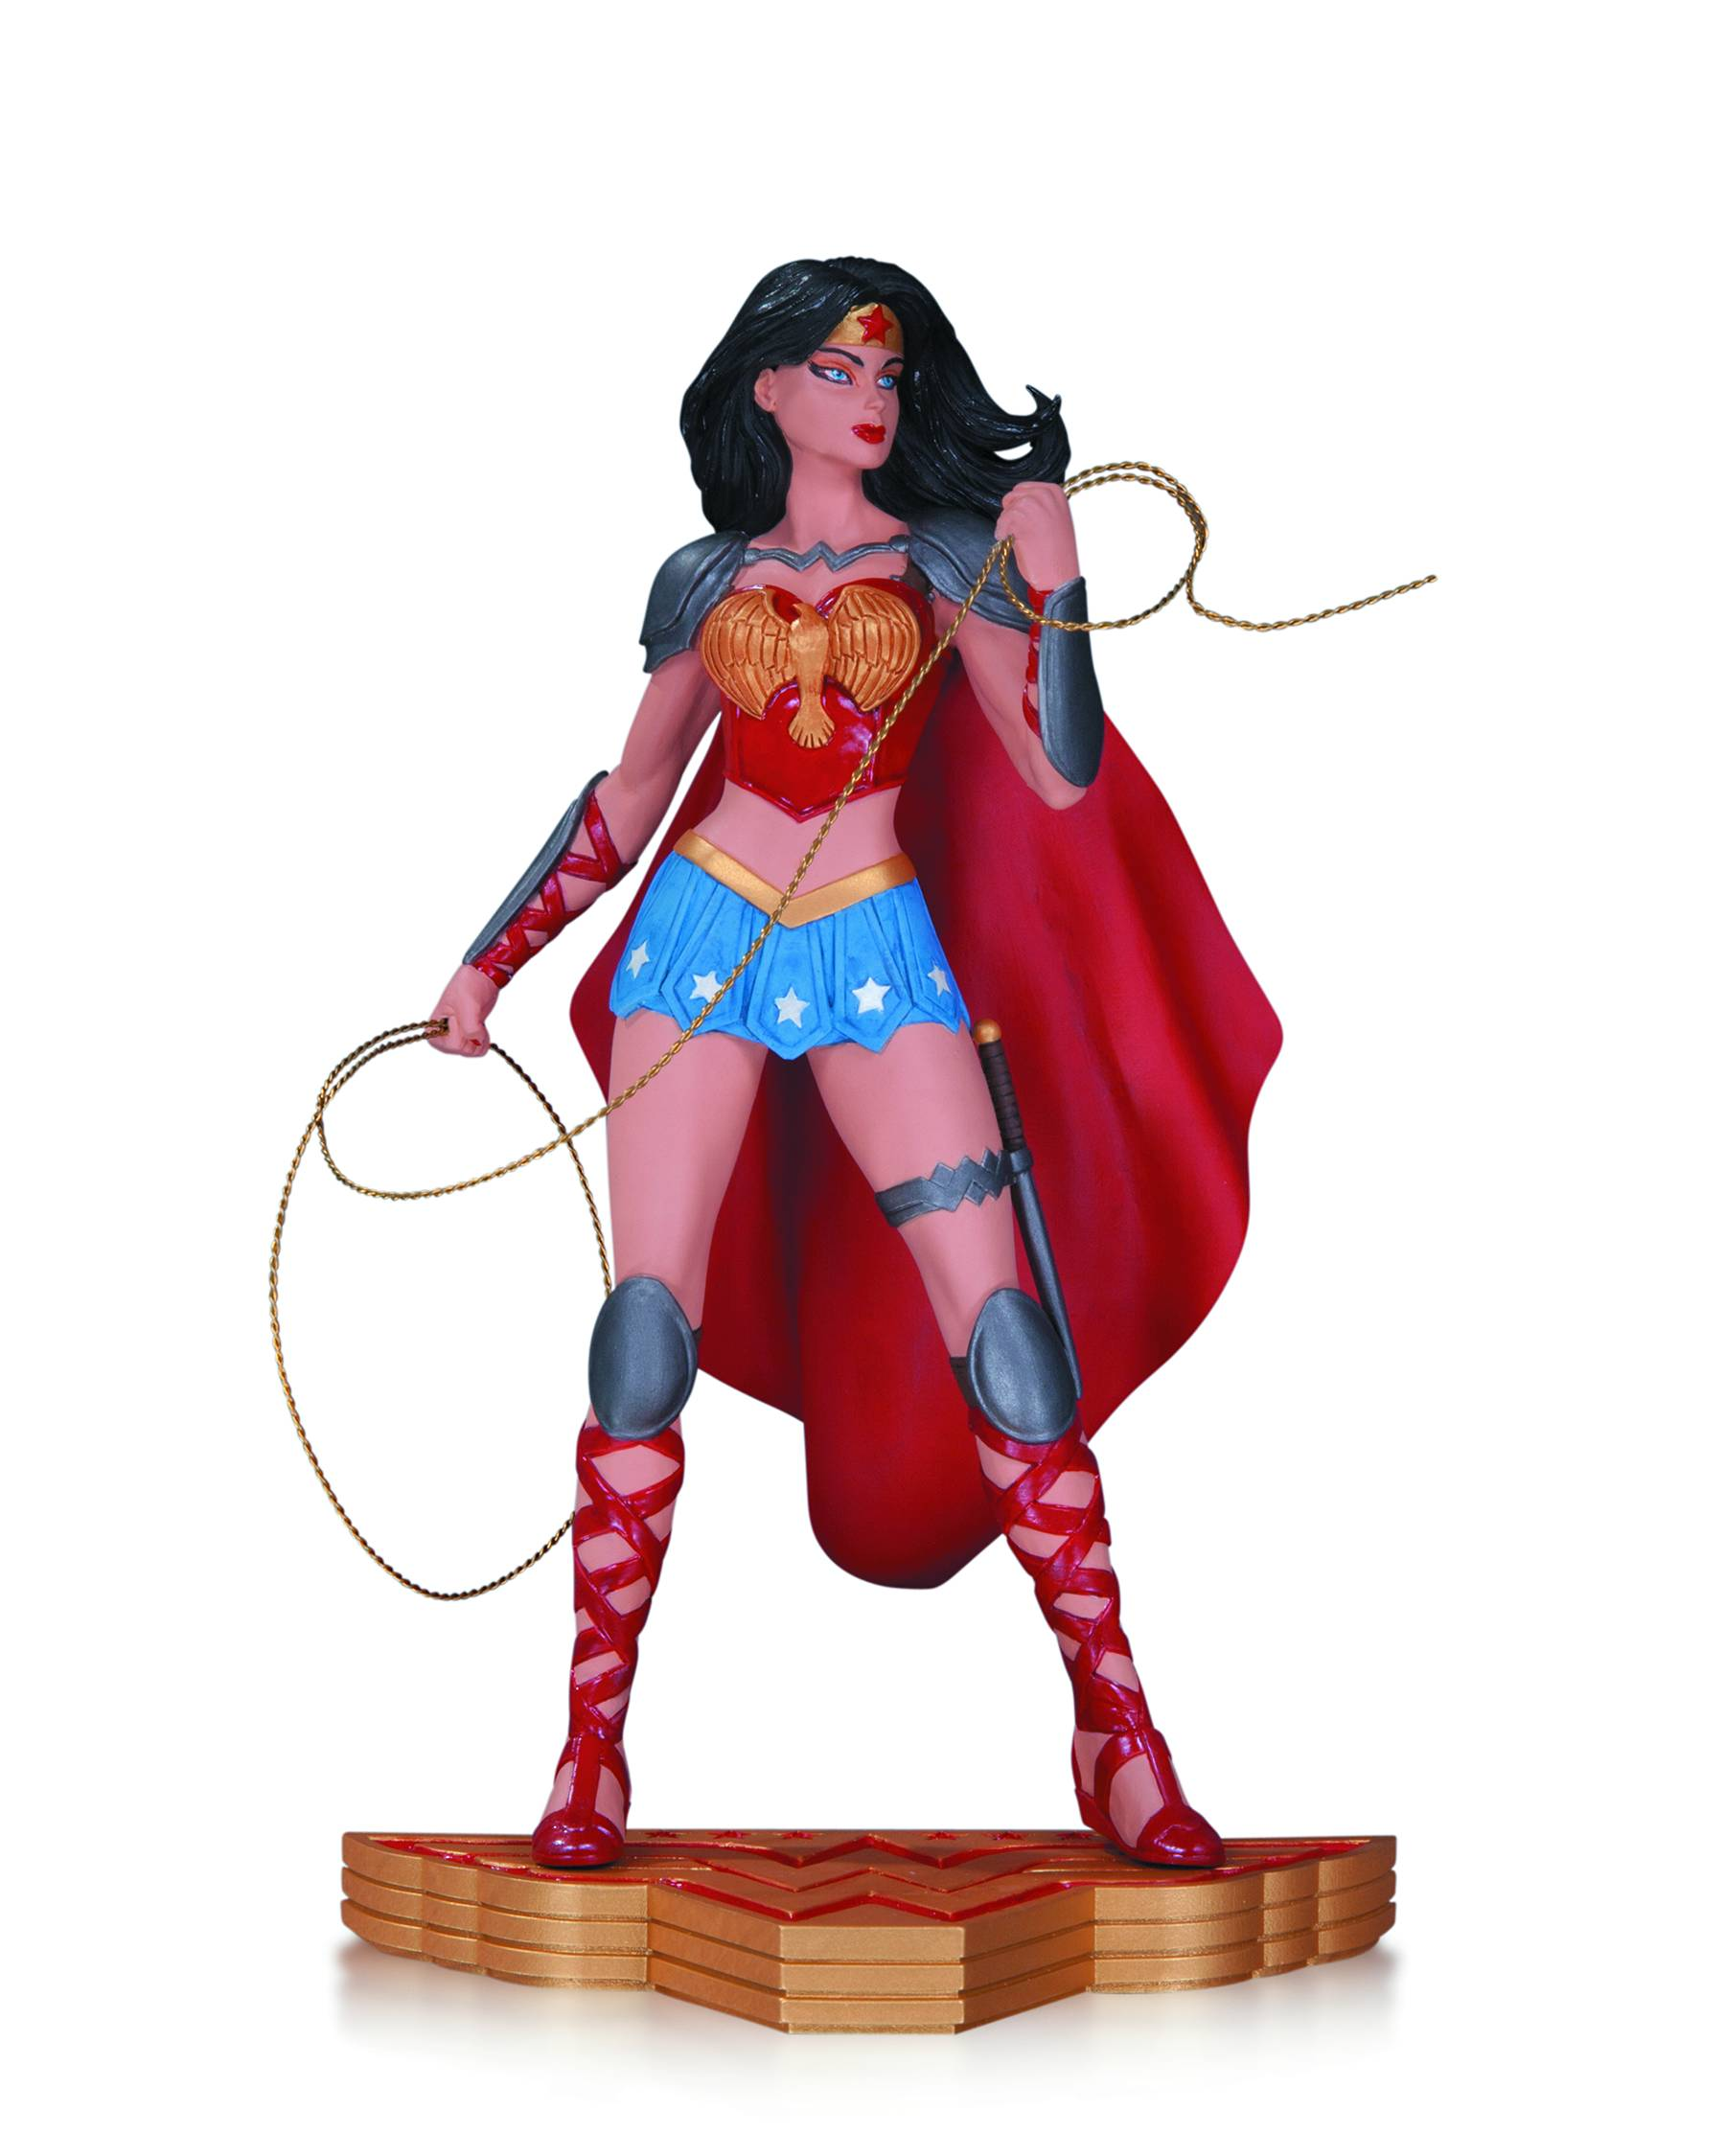 https://0901.nccdn.net/4_2/000/000/038/2d3/WONDER-WOMAN-ART-OF-WAR-STATUE-BY-DAVID-FINCH.jpg